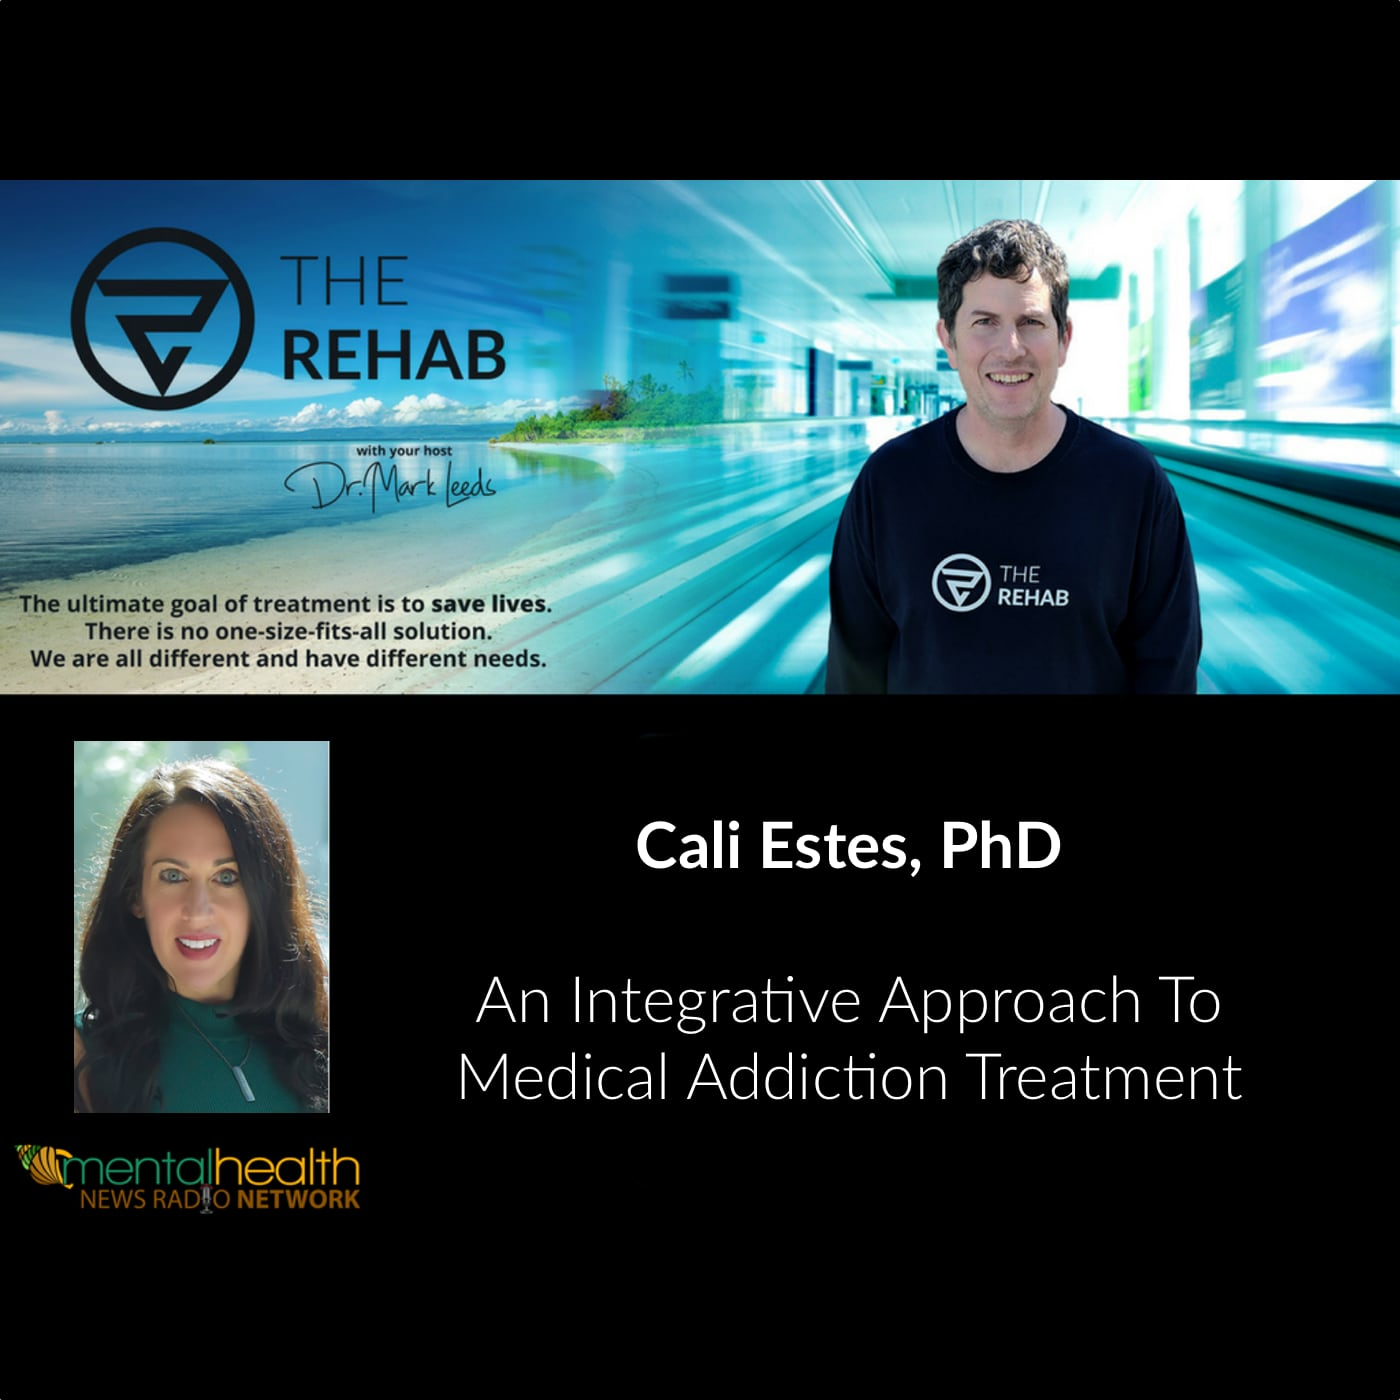 Dr. Cali Estes Celebrity Addiction Coach